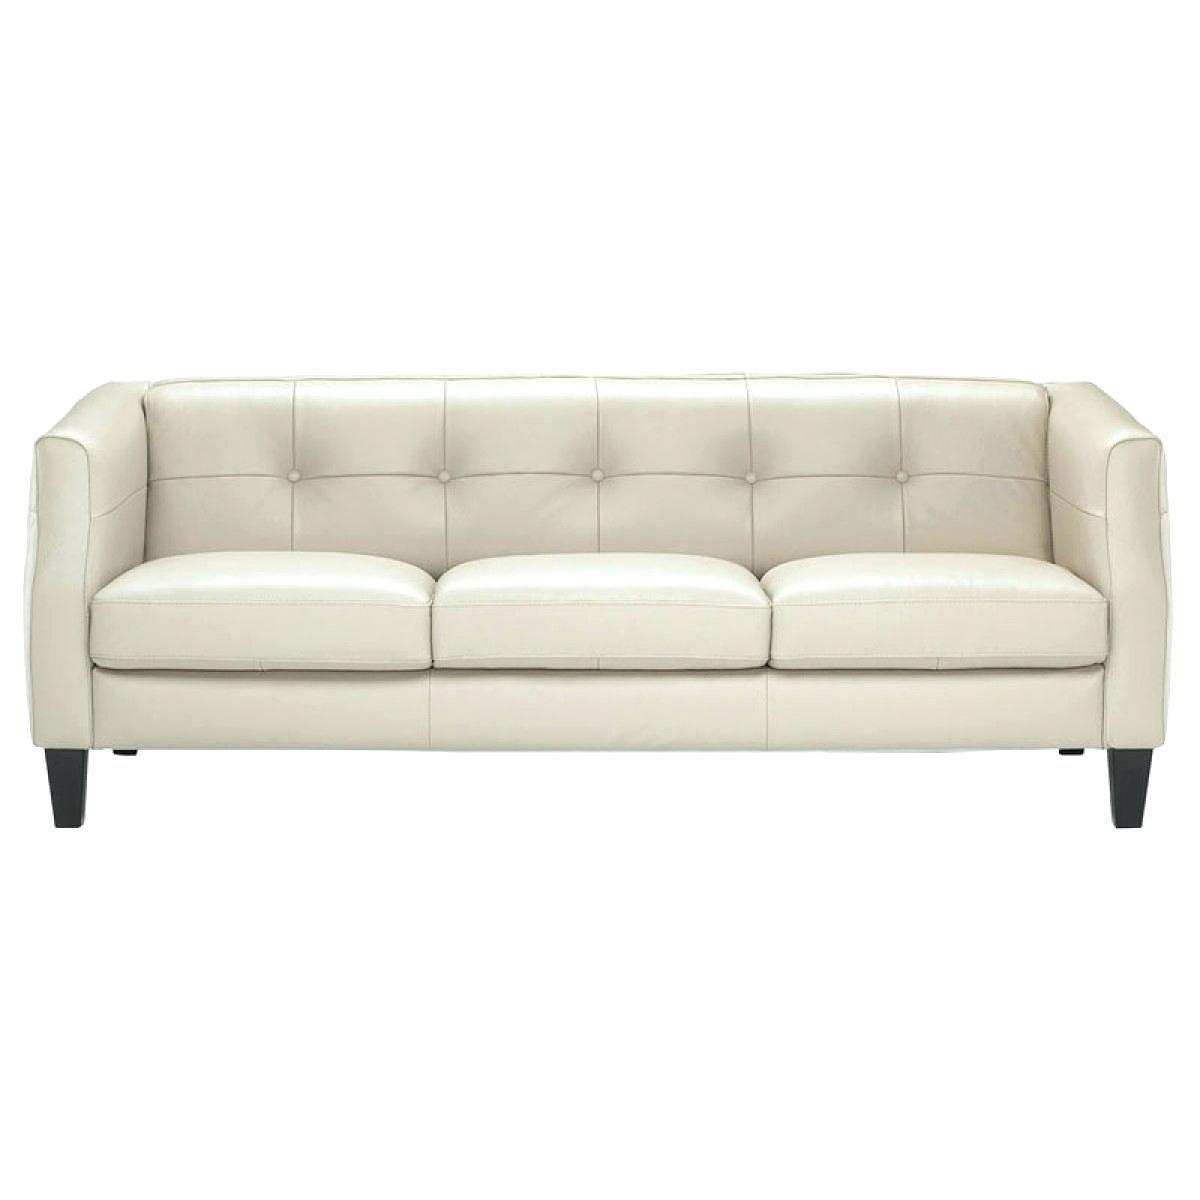 diy sofa repair legacy leather austin best 25 43 bed ideas on pinterest how to